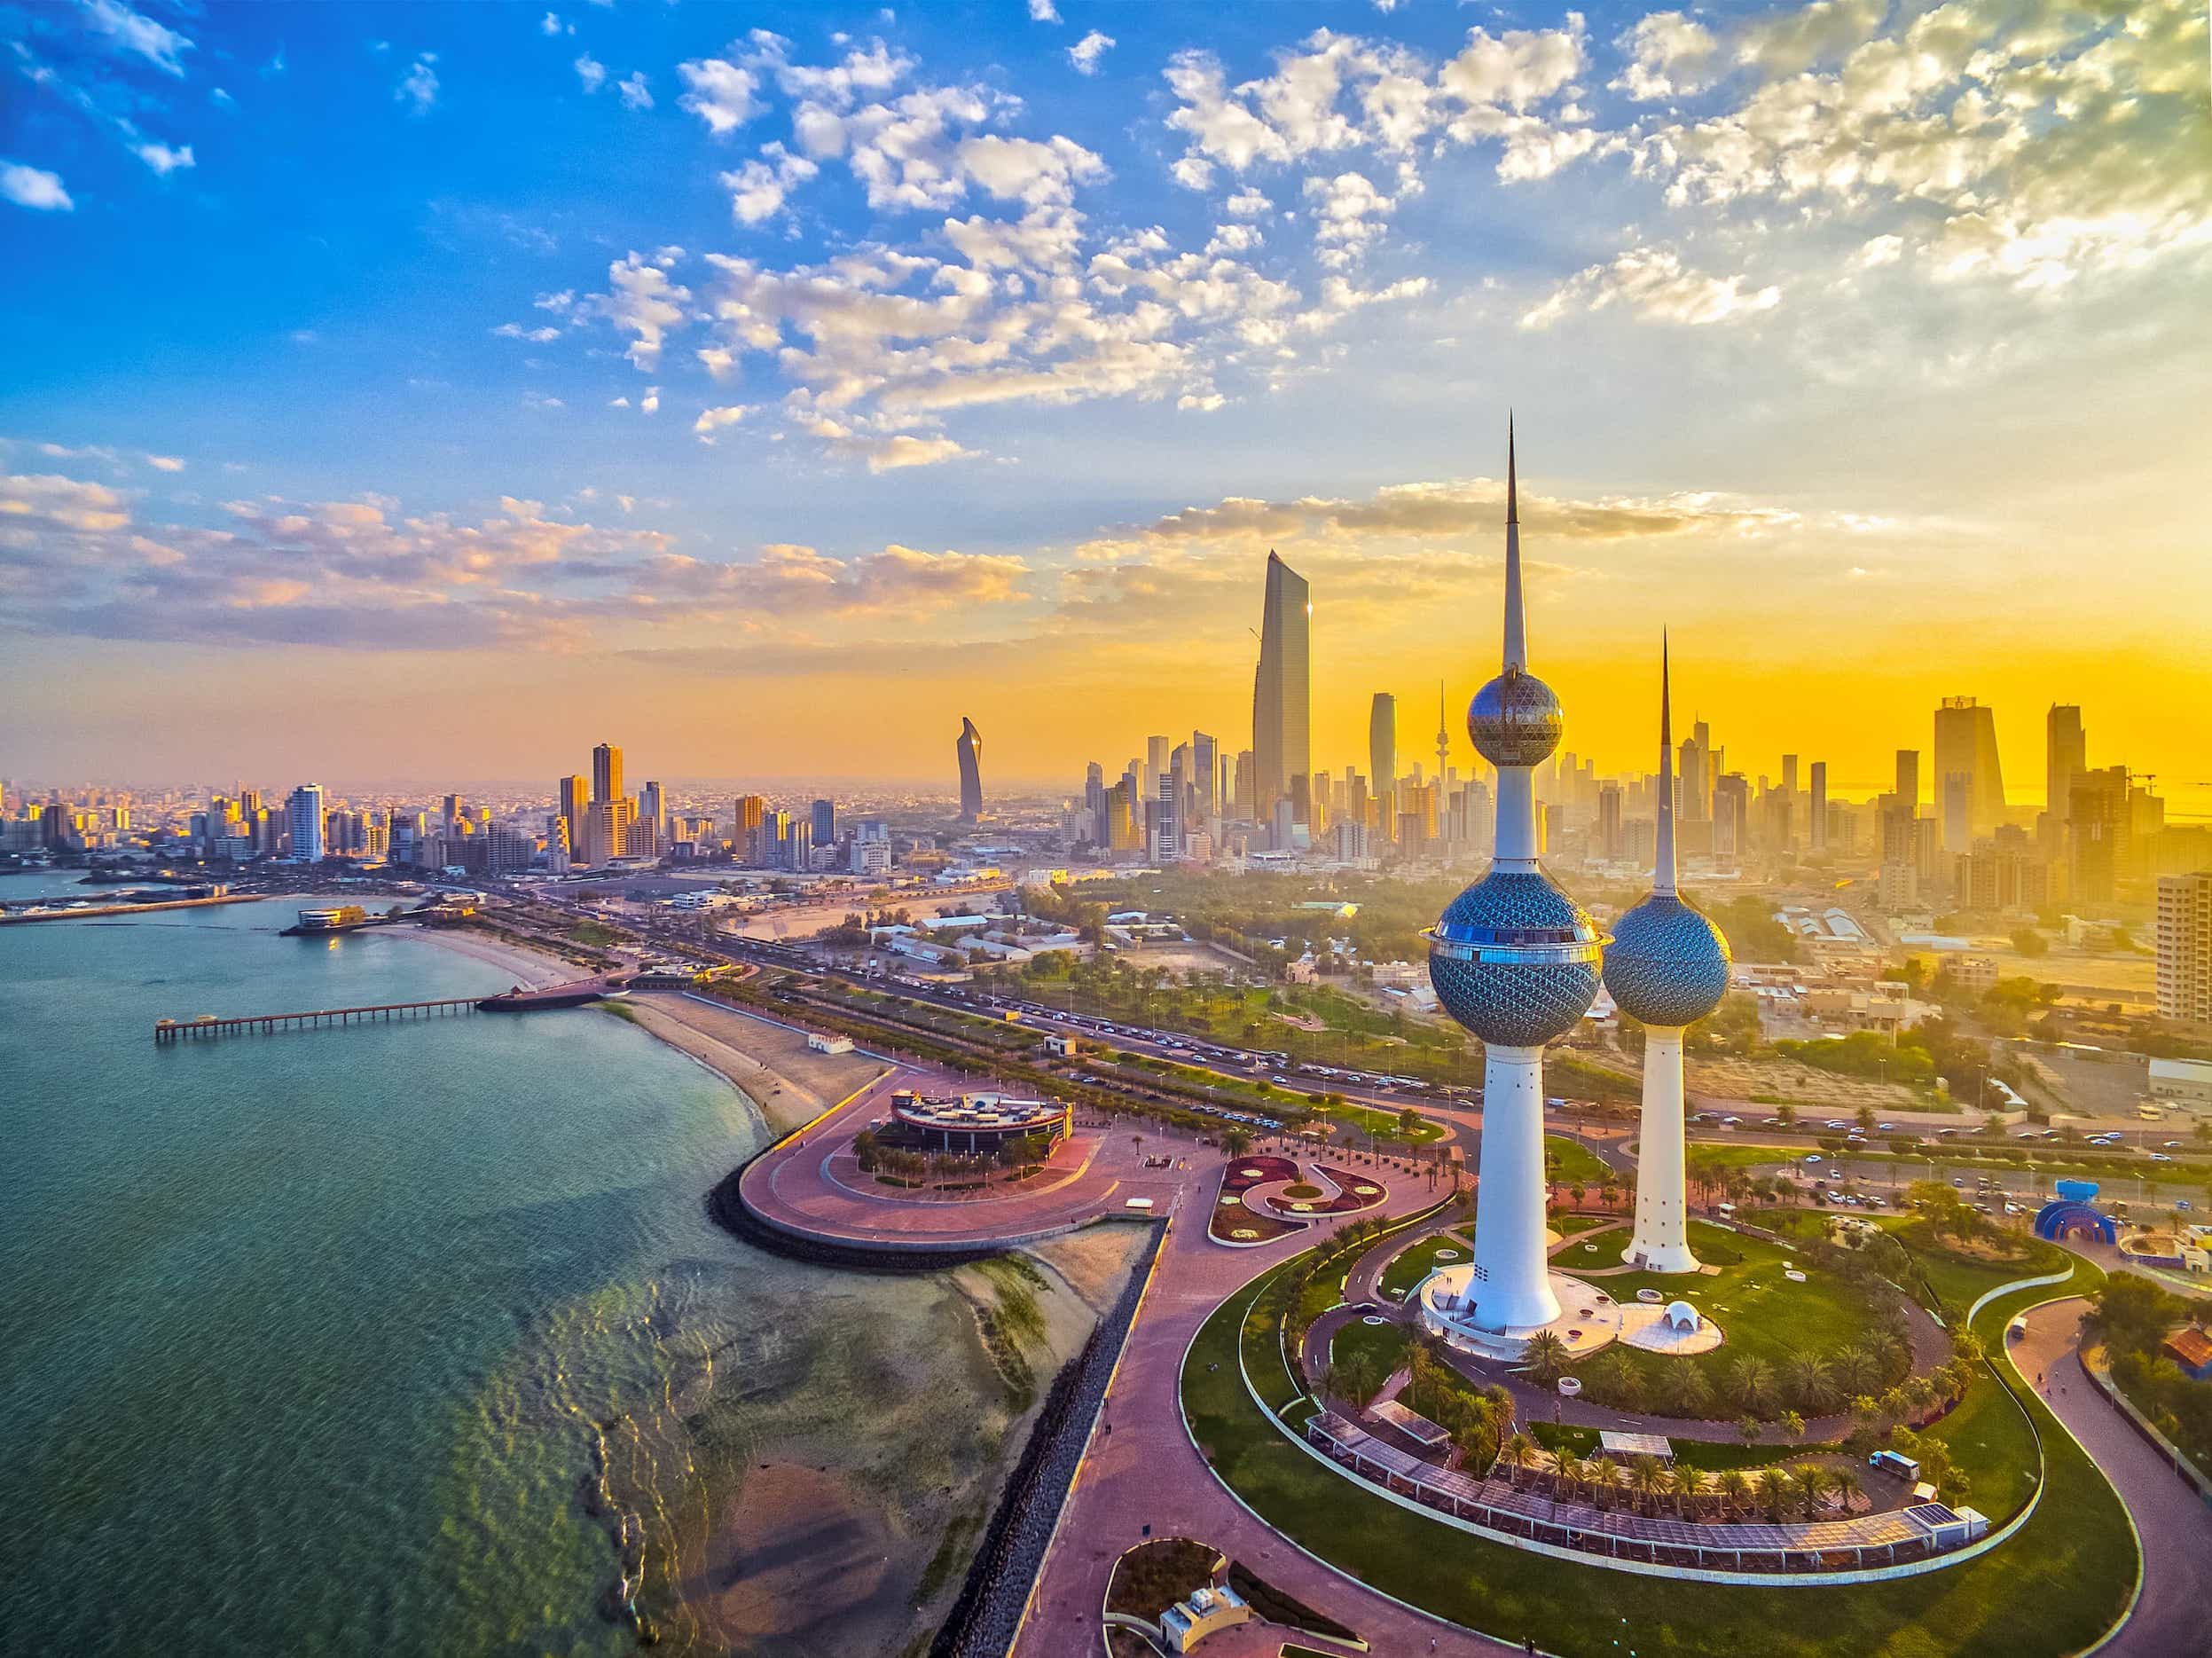 Kuwait promises fund worth $200 million for the region's technology sector